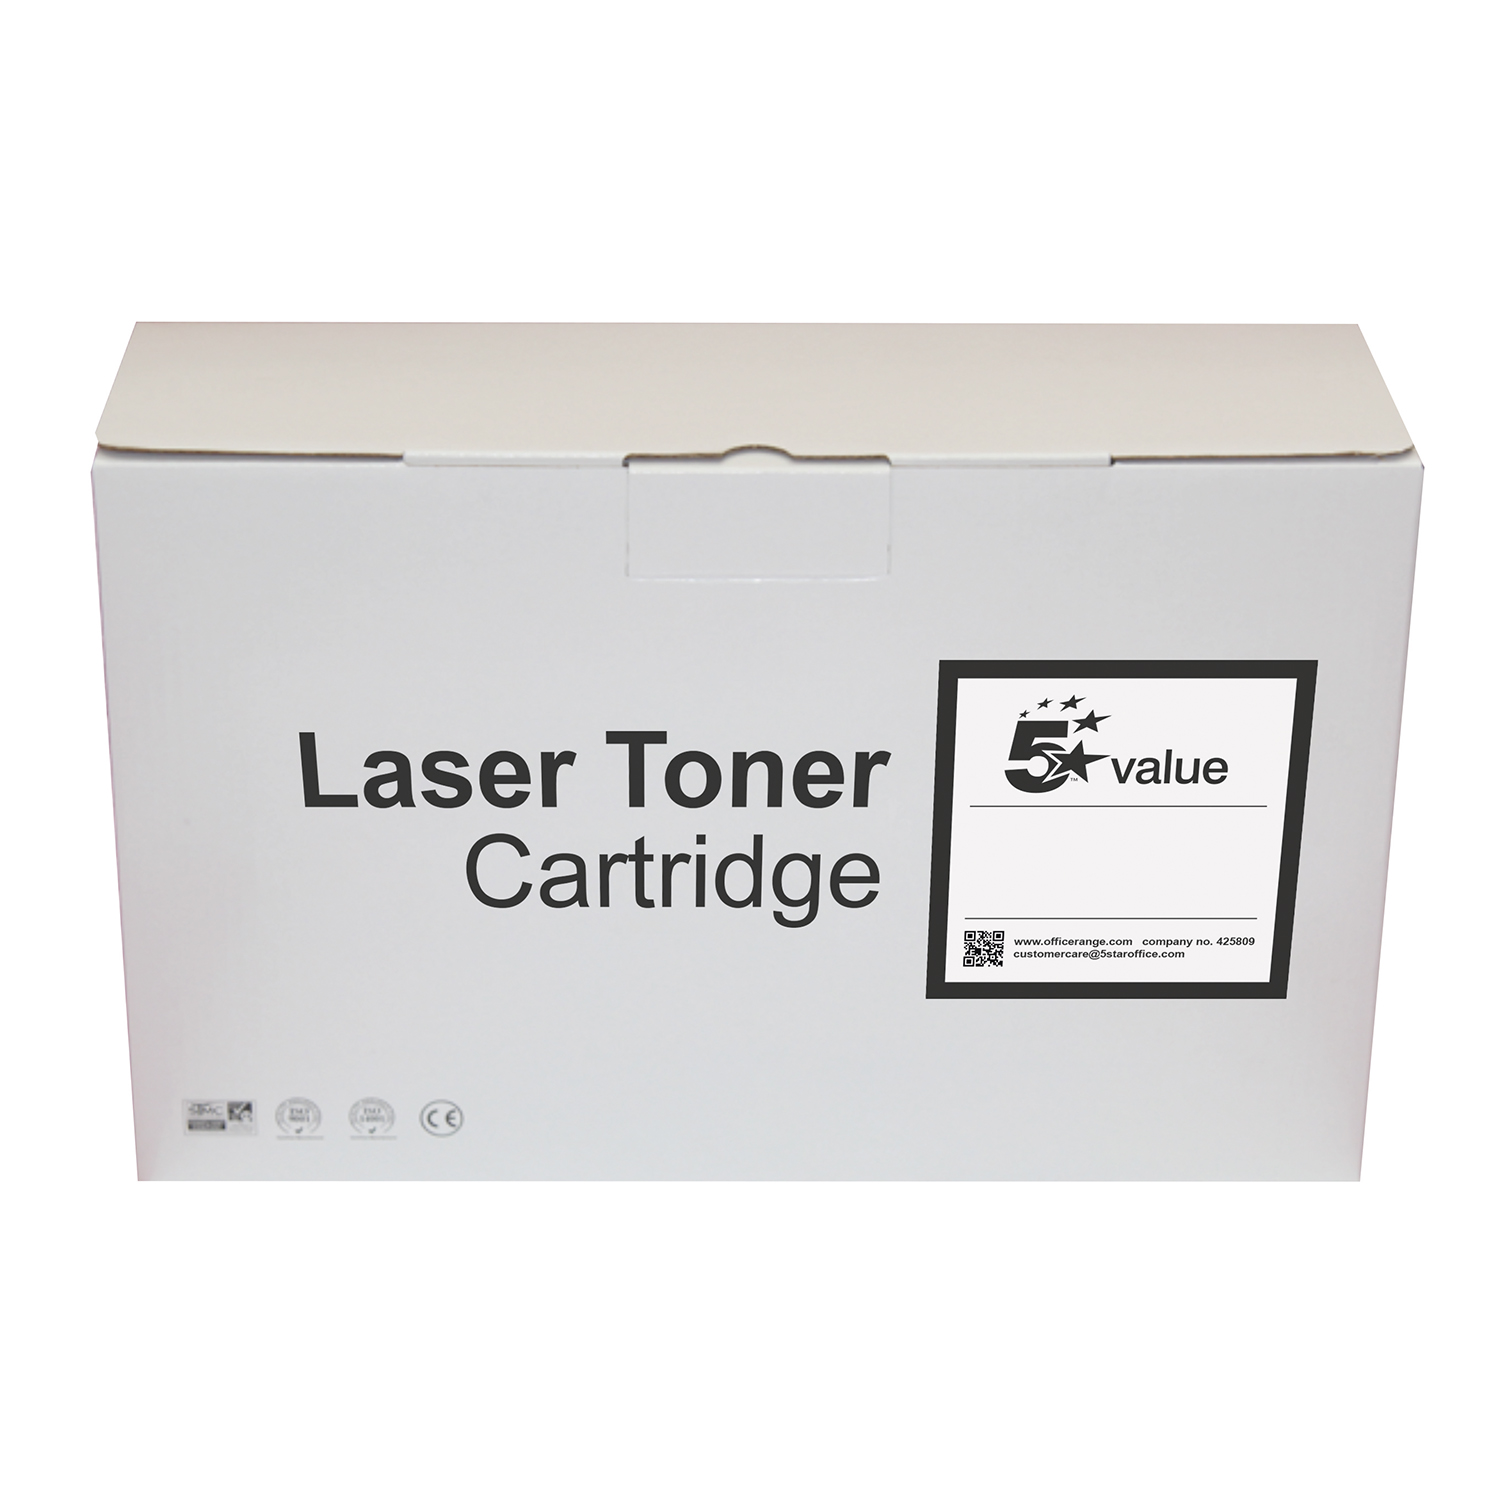 Maintenance Kits 5 Star Value Reman Laser Toner Cartridge Page Life 4000pp Black [Canon FX10 0263B002 Alternative]